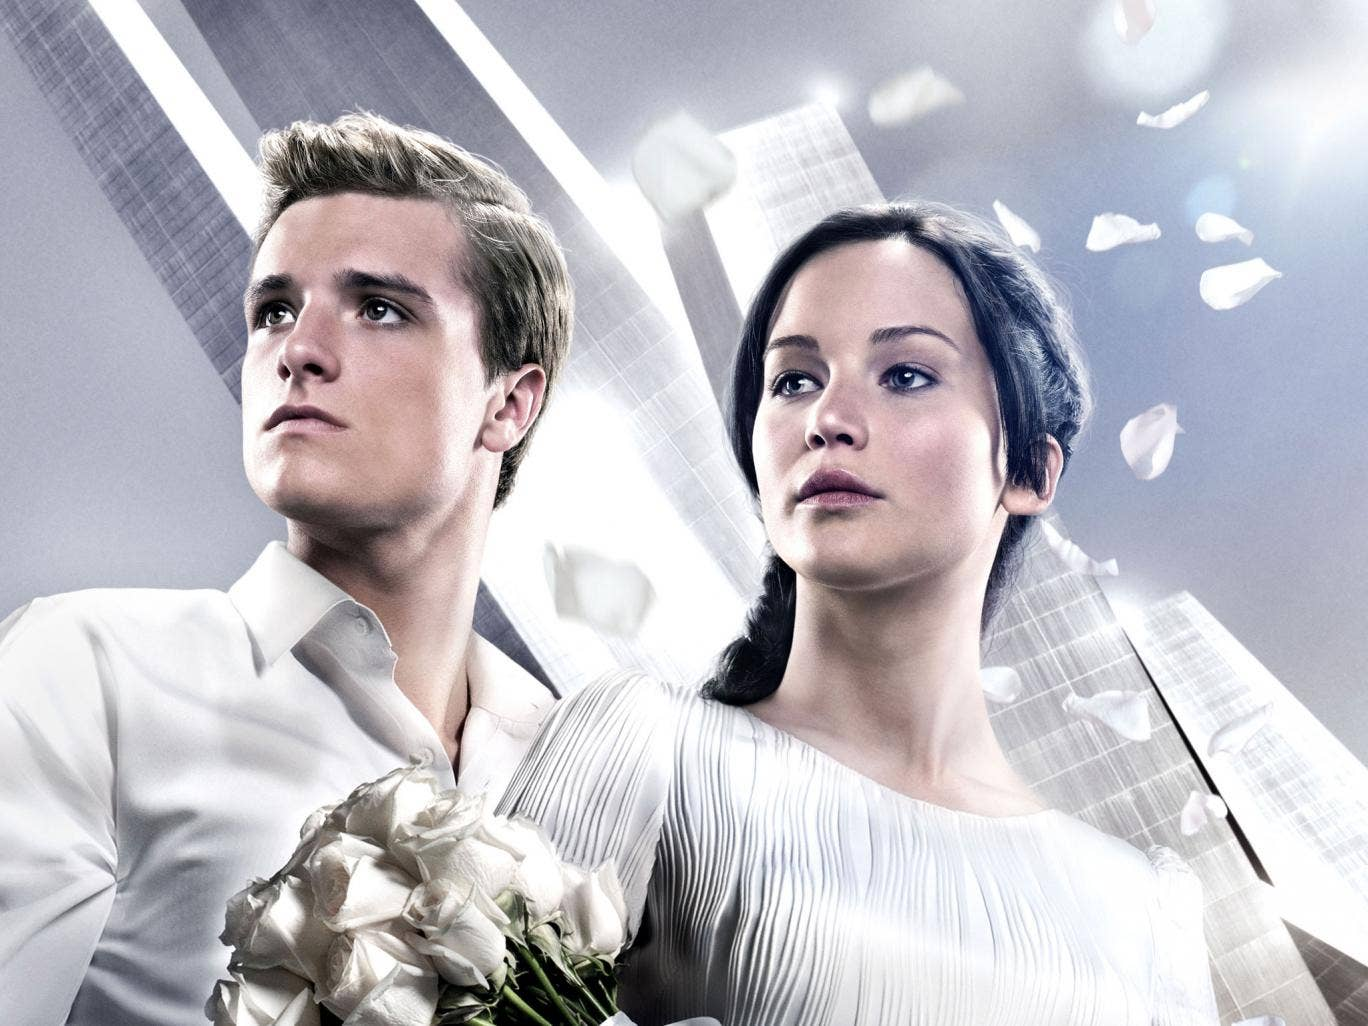 Josh Hutcherson and Jennifer Lawrence star in The Hunger Games: Catching Fire